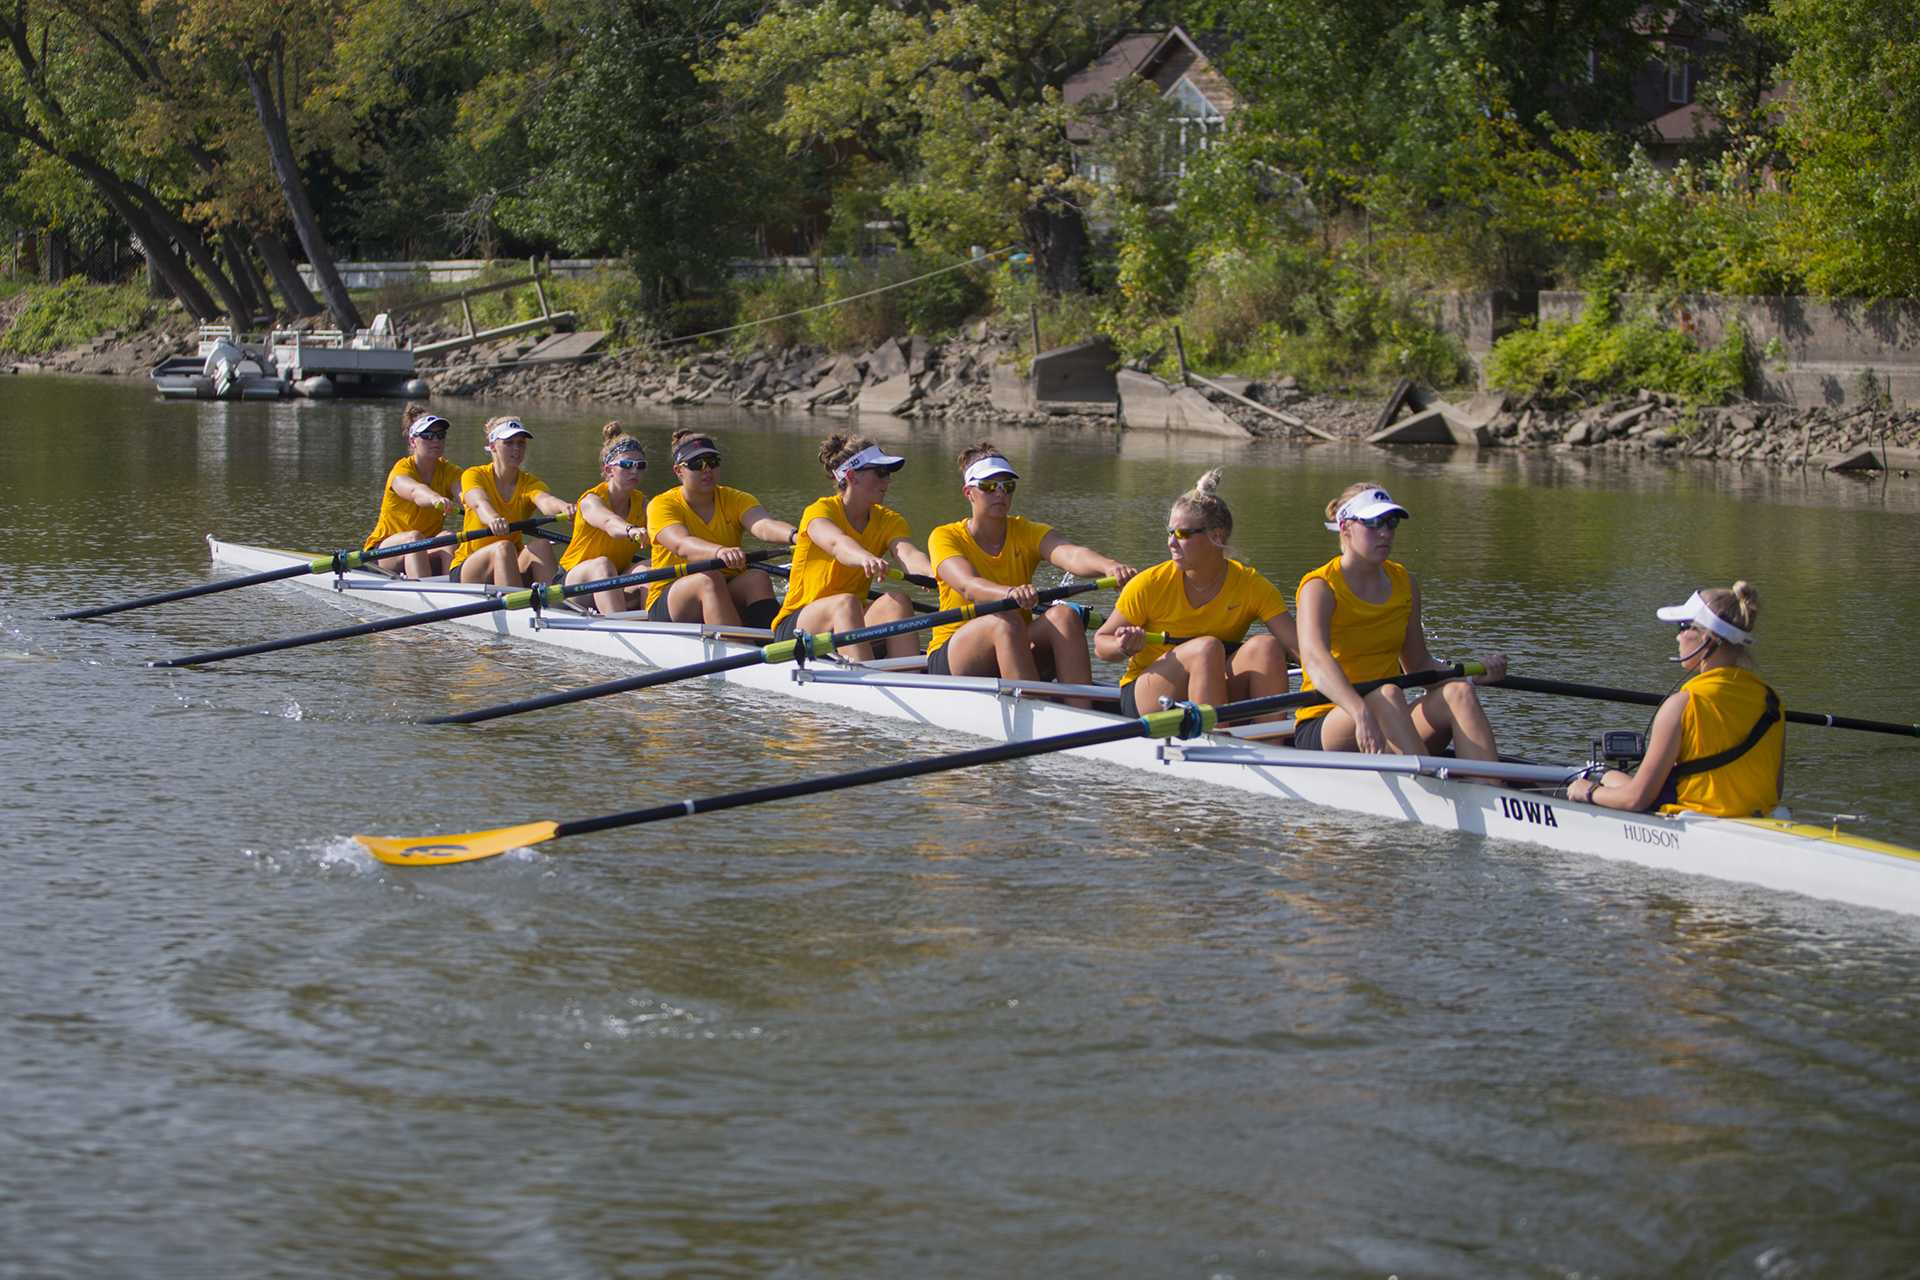 Iowa's rowing team practices on the Iowa River on Friday, Sept. 15, 2017. The rowing team recently finalized their schedule, with two home competitions on Oct. 6 and 7. (Lily Smith/The Daily Iowan)